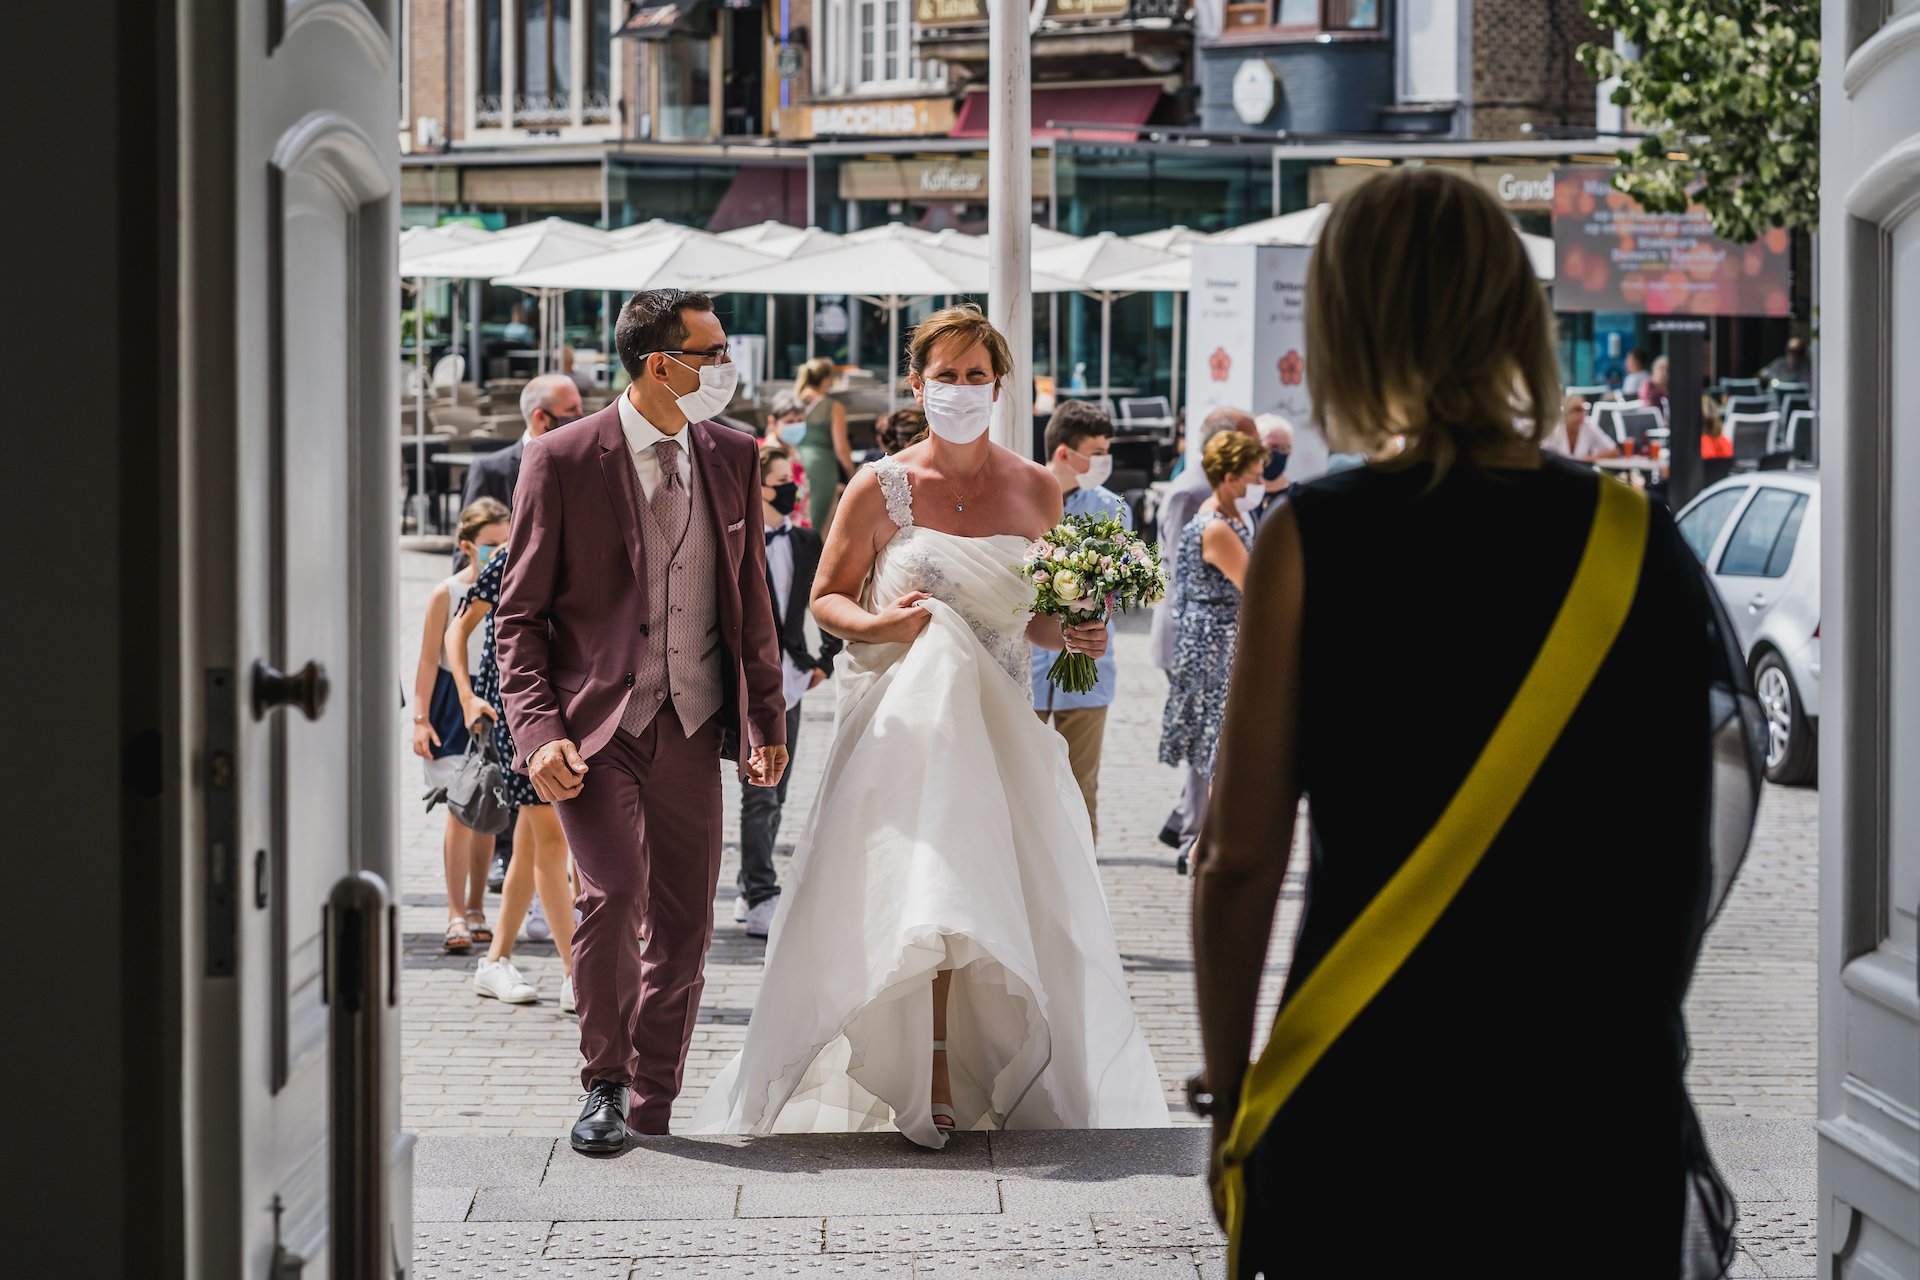 Belgian Elopement Images from the City Hall of Sint-Truiden | Wearing masks upon their arrival, the bride and groom walk into the City Hall